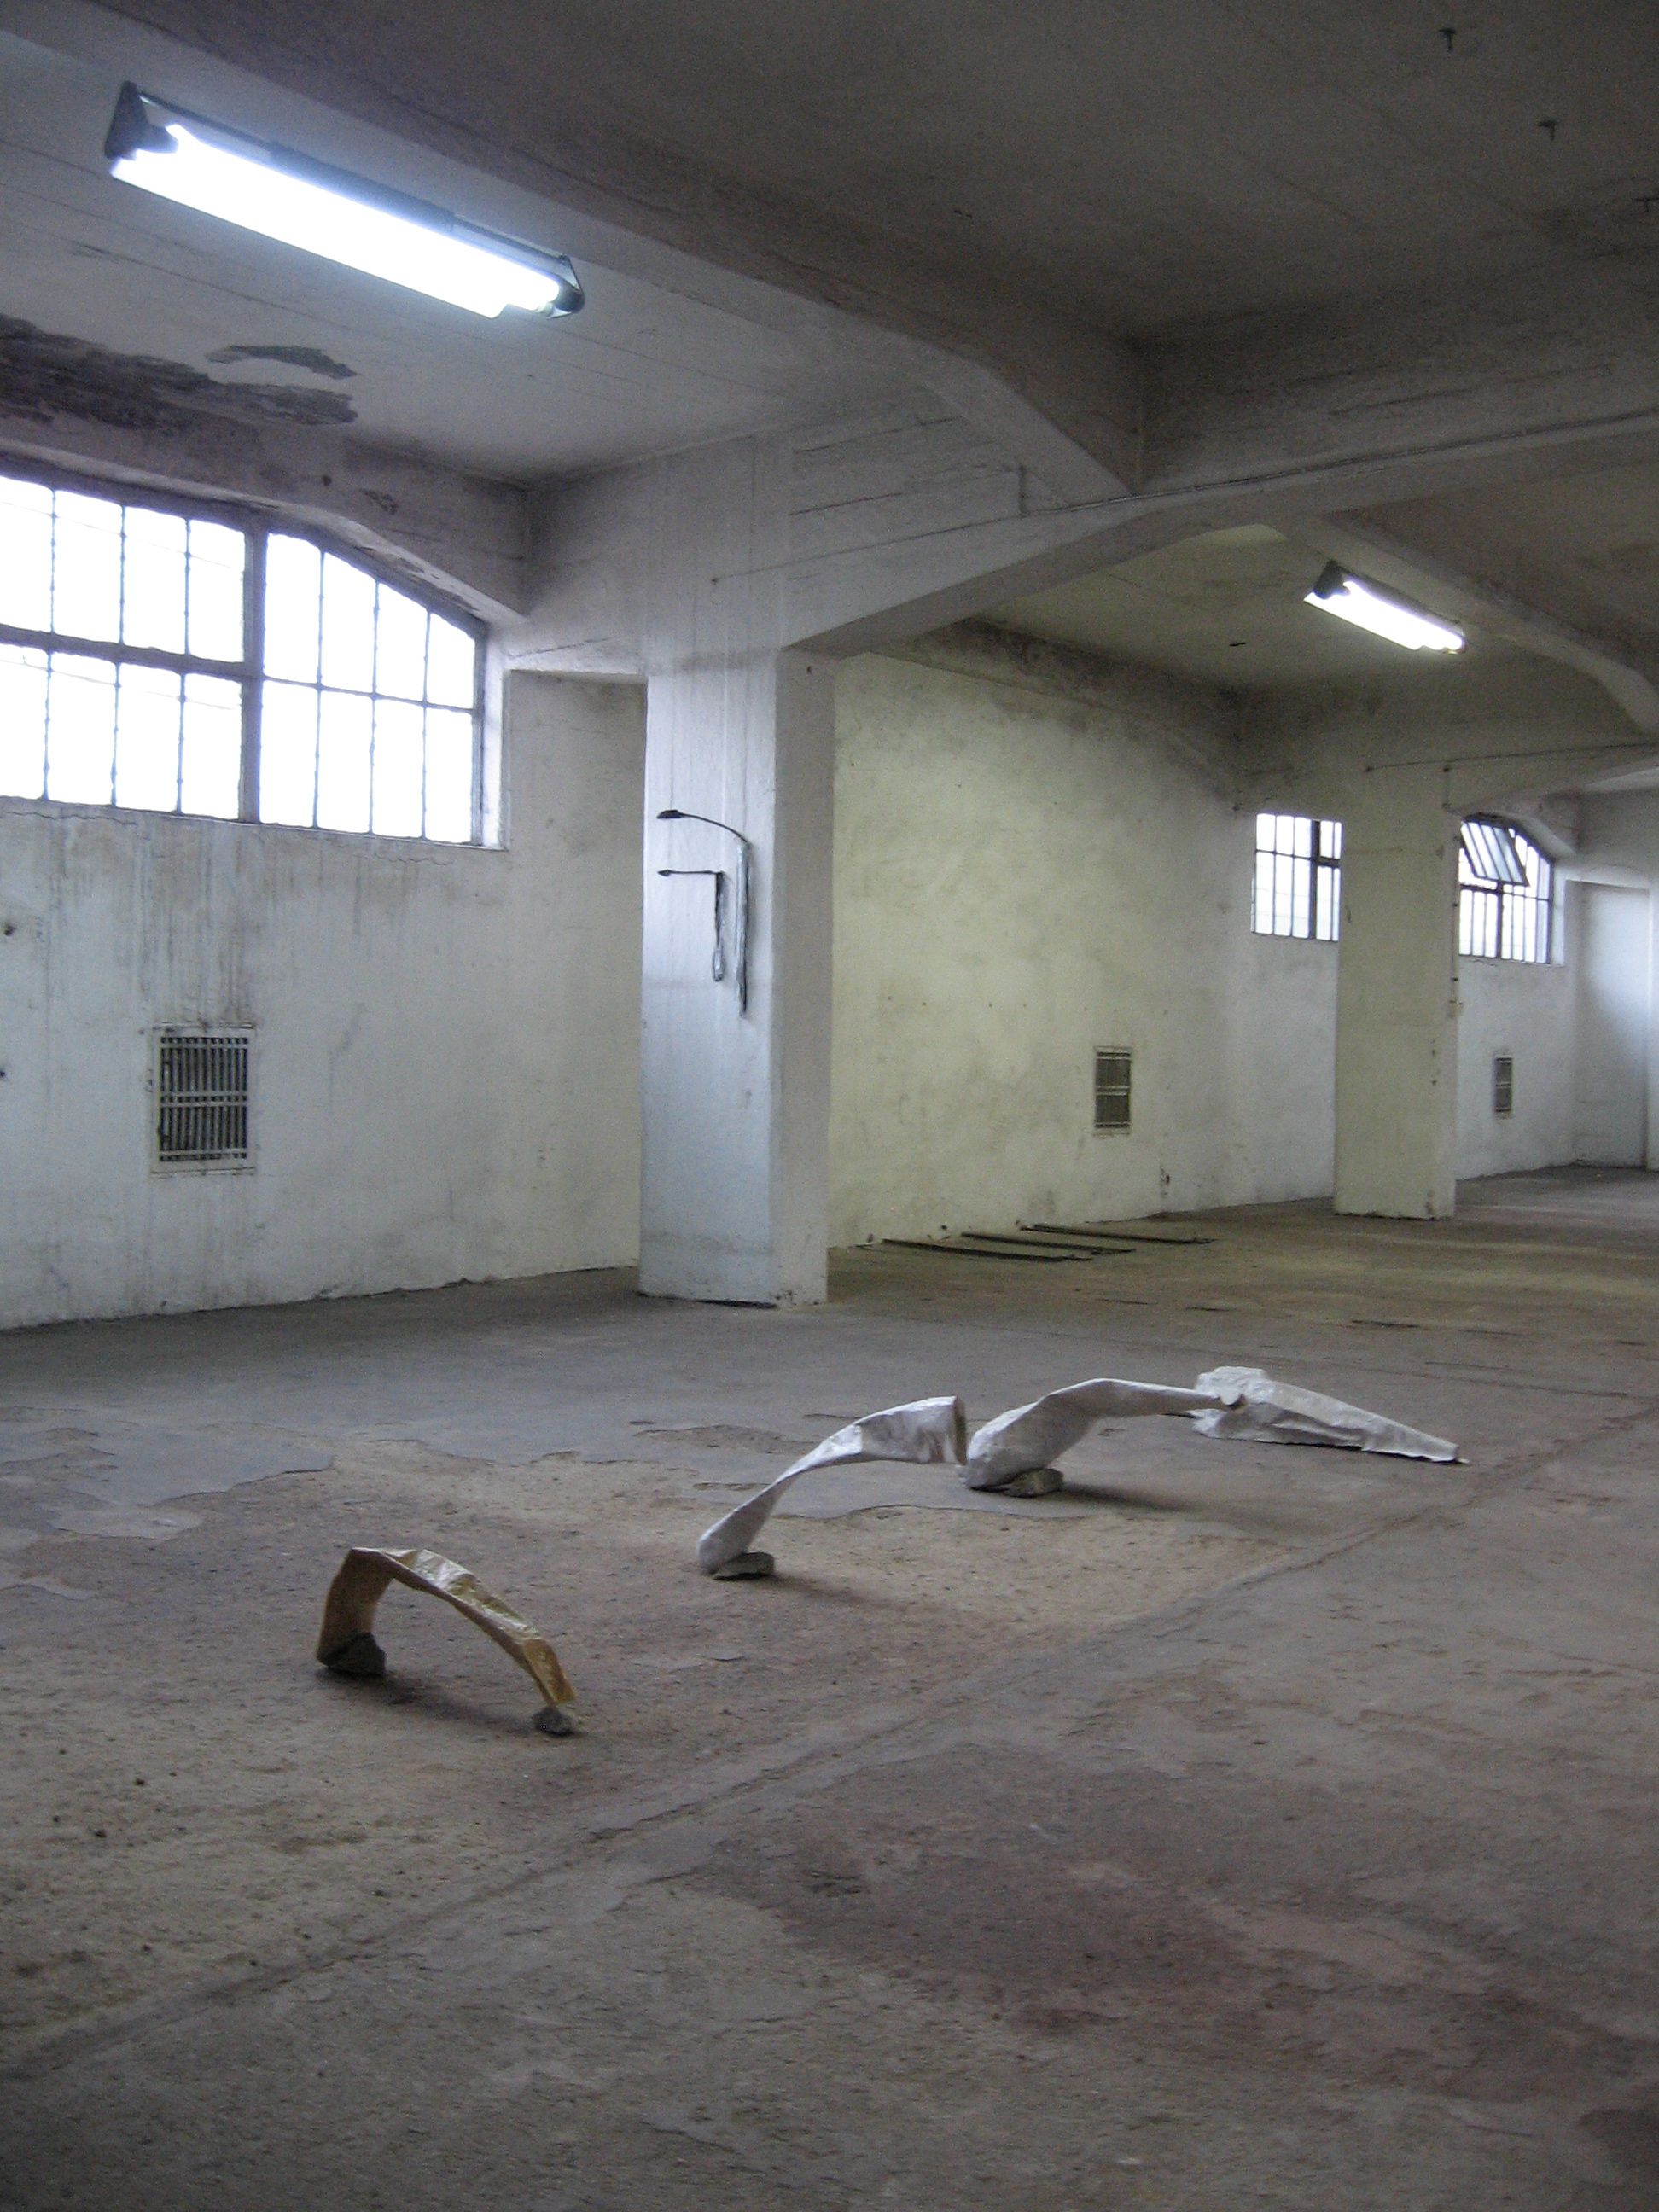 Cannons  and  Arrows  (installation view), 2010, r  ocks, papier-mâché / twigs, plastic bags, papier-mâché, charcoal, d  imensions variable